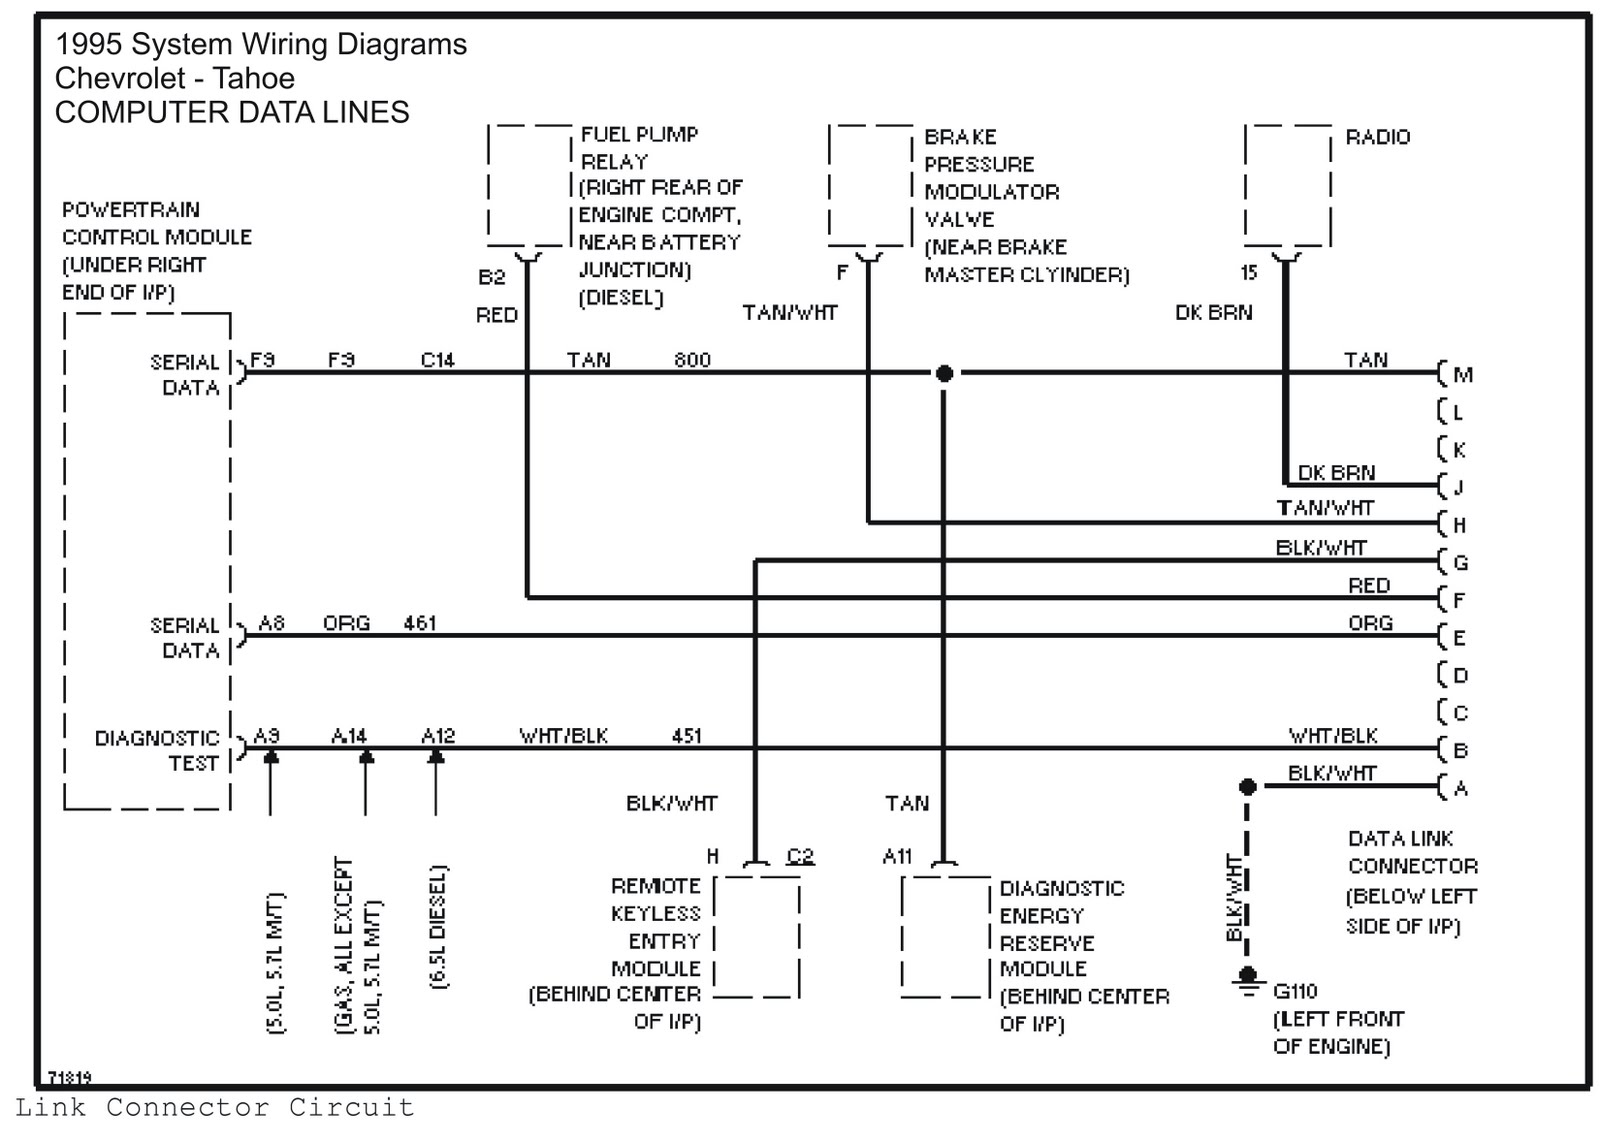 hight resolution of 96 tahoe 02 wiring diagram wiring diagram 96 tahoe engine diagram